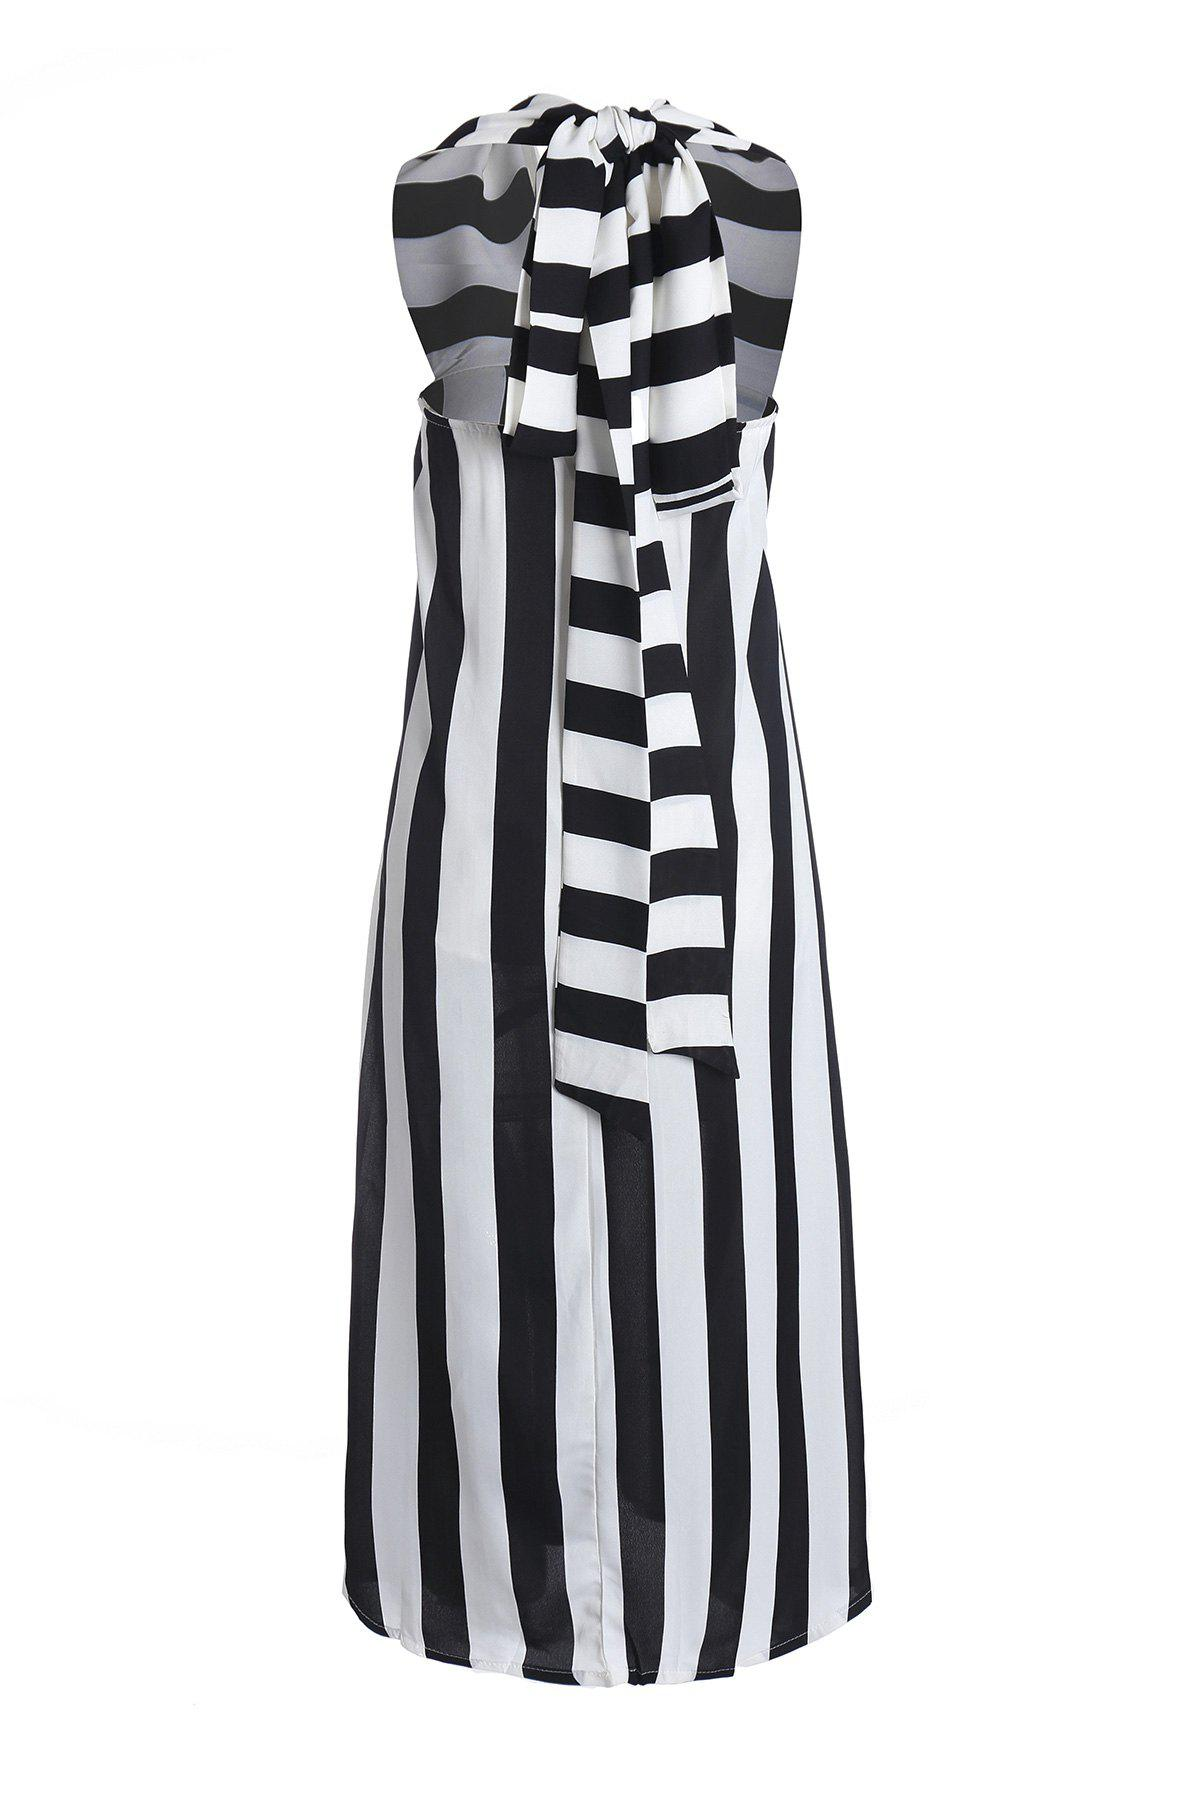 Sexy Style Plunging Neck Sleeveless Striped Women's Maxi Dress - WHITE/BLACK S